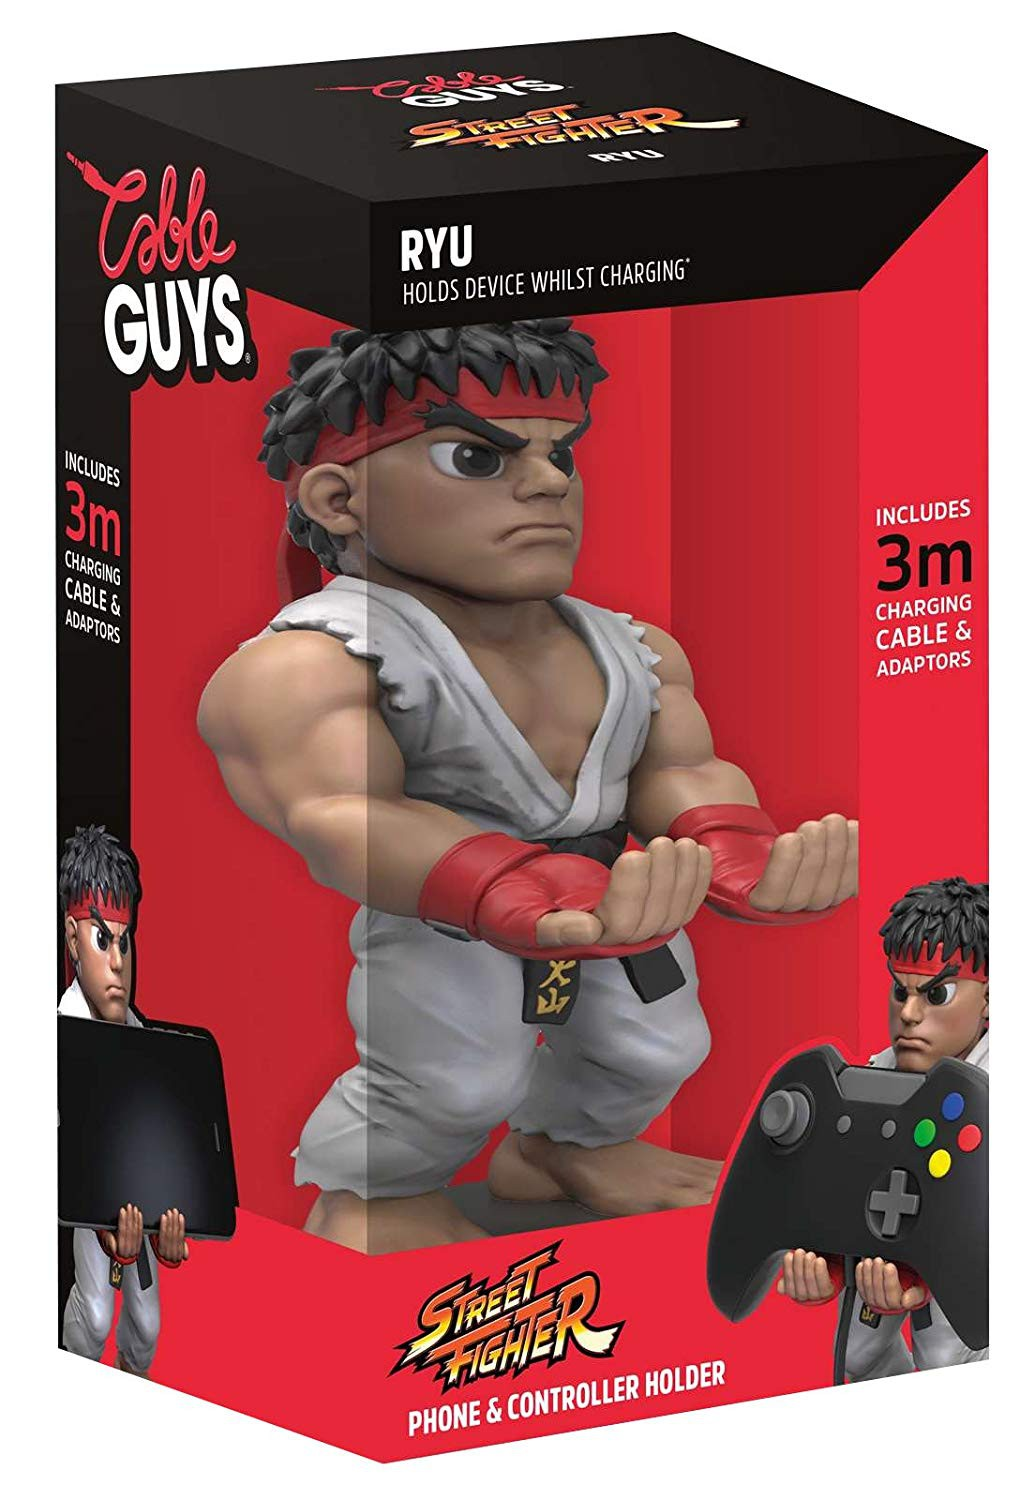 Street Fighter Ryu Cable Guy stand